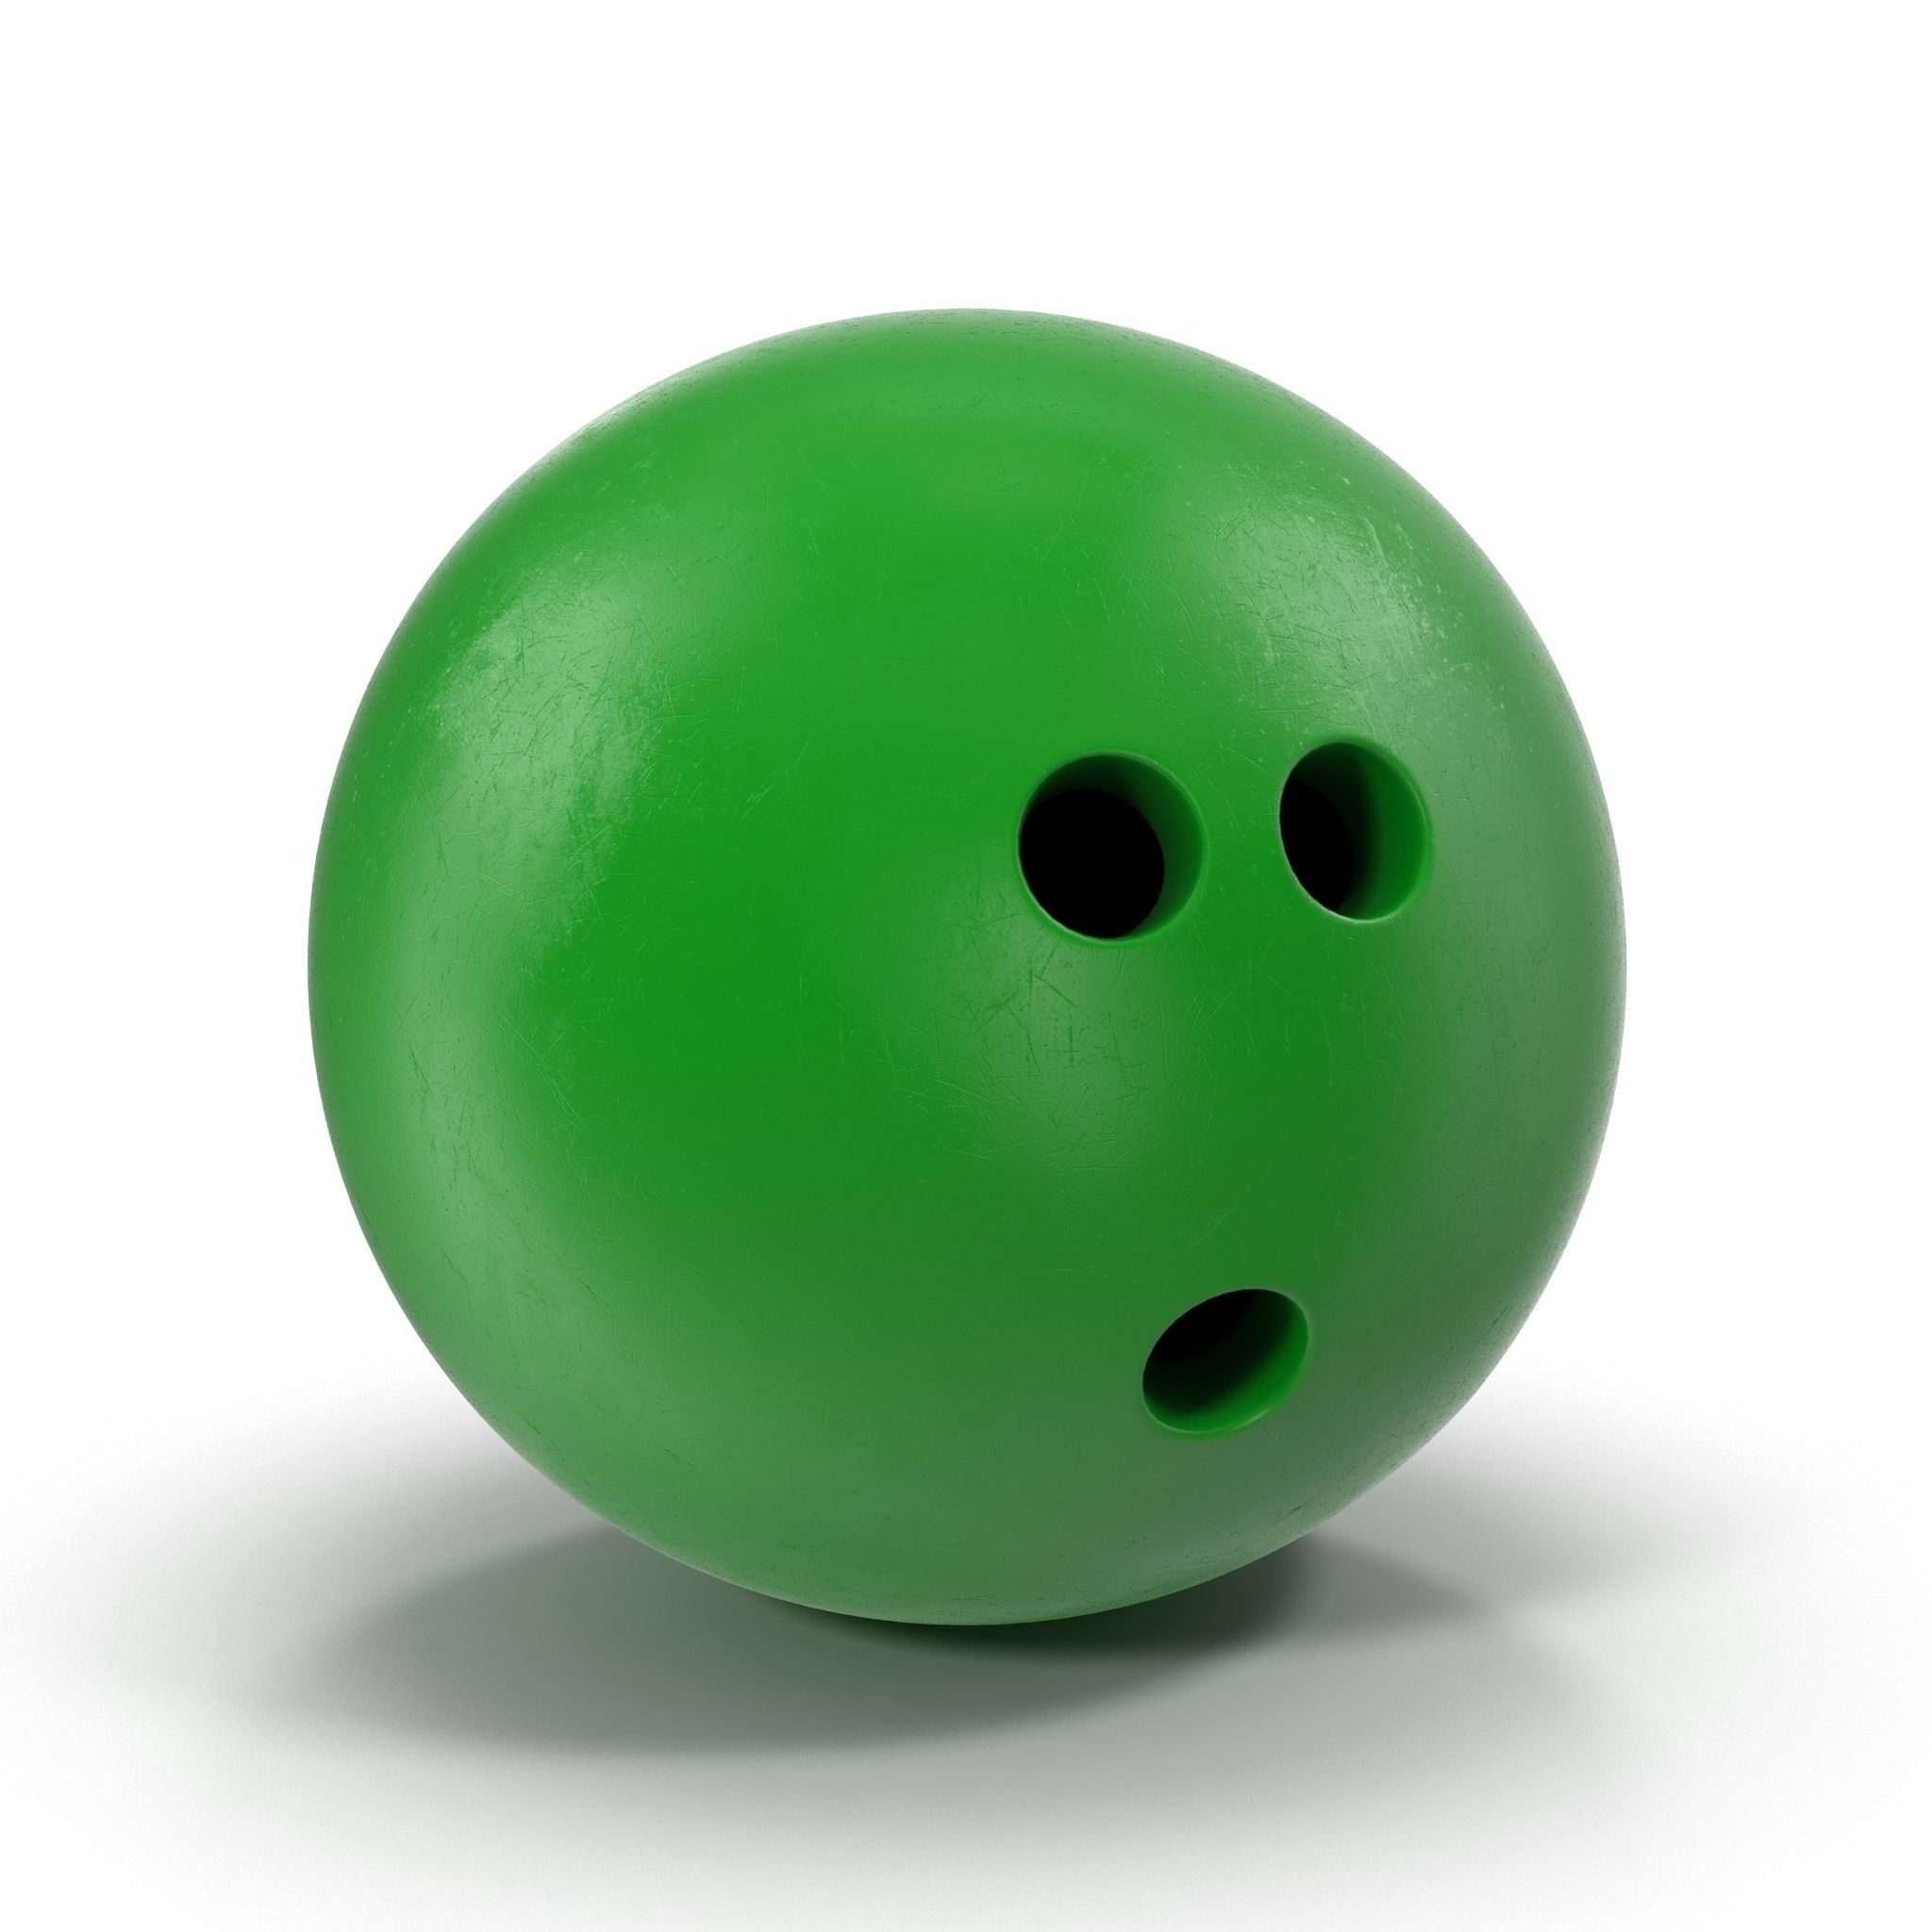 2048x2048 Bowling Ball 3d Model Player Cgtrader